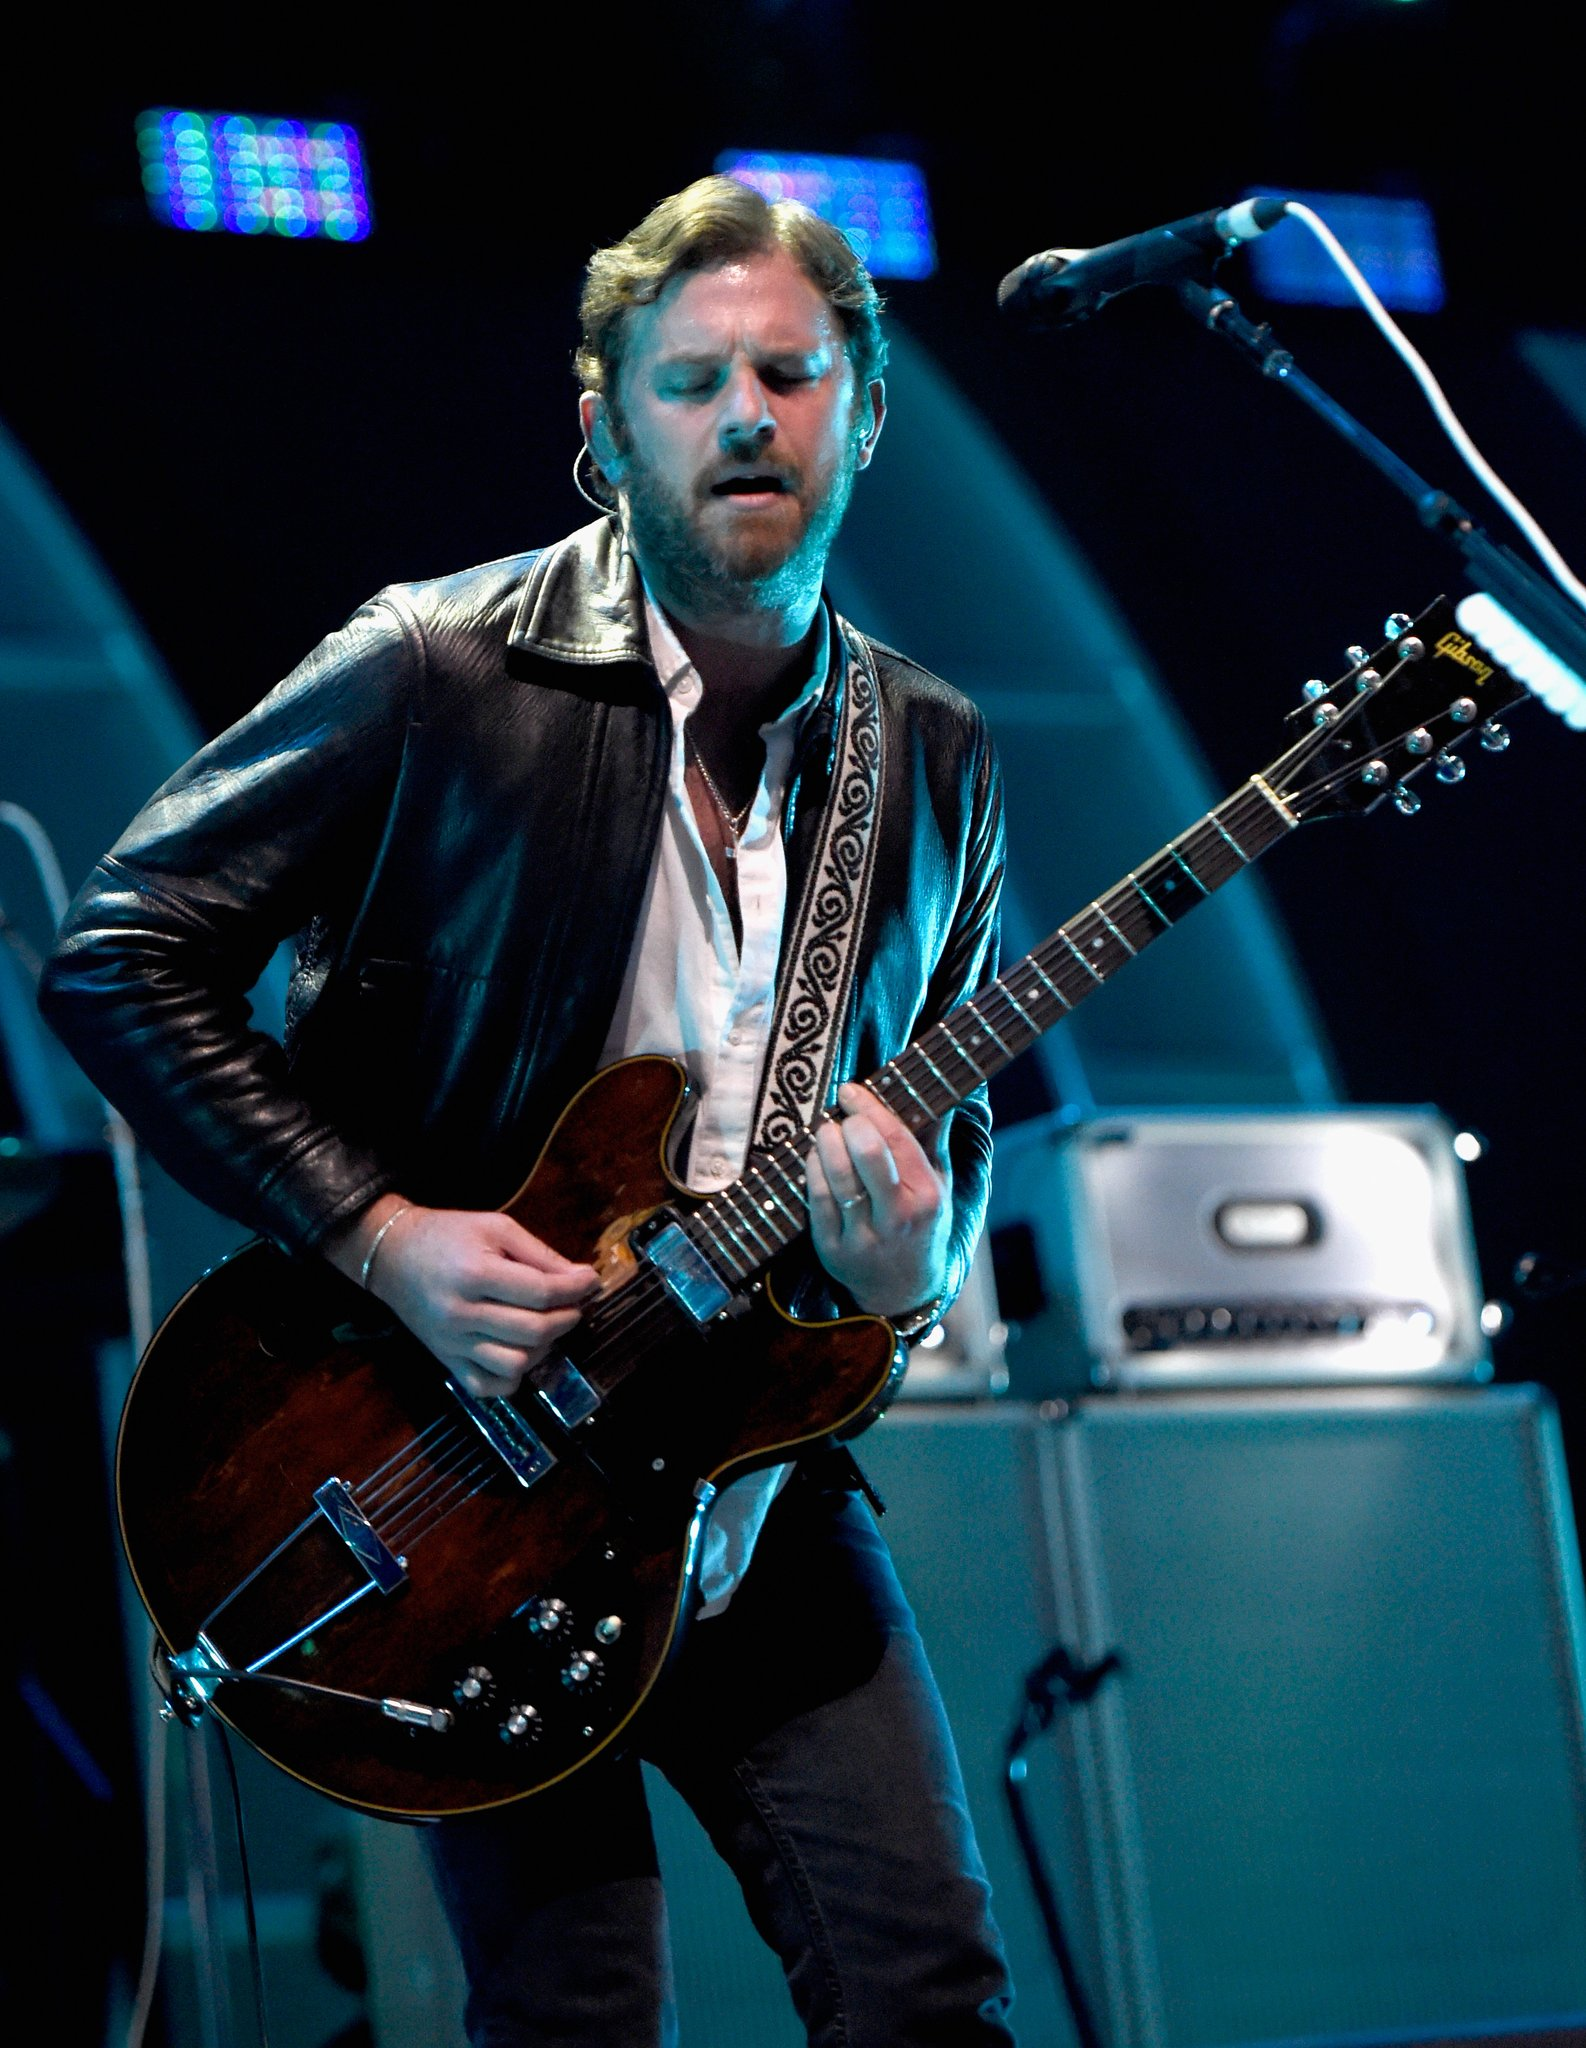 Today is just FULL of great birthdays! Happy birthday to Caleb Followill of !